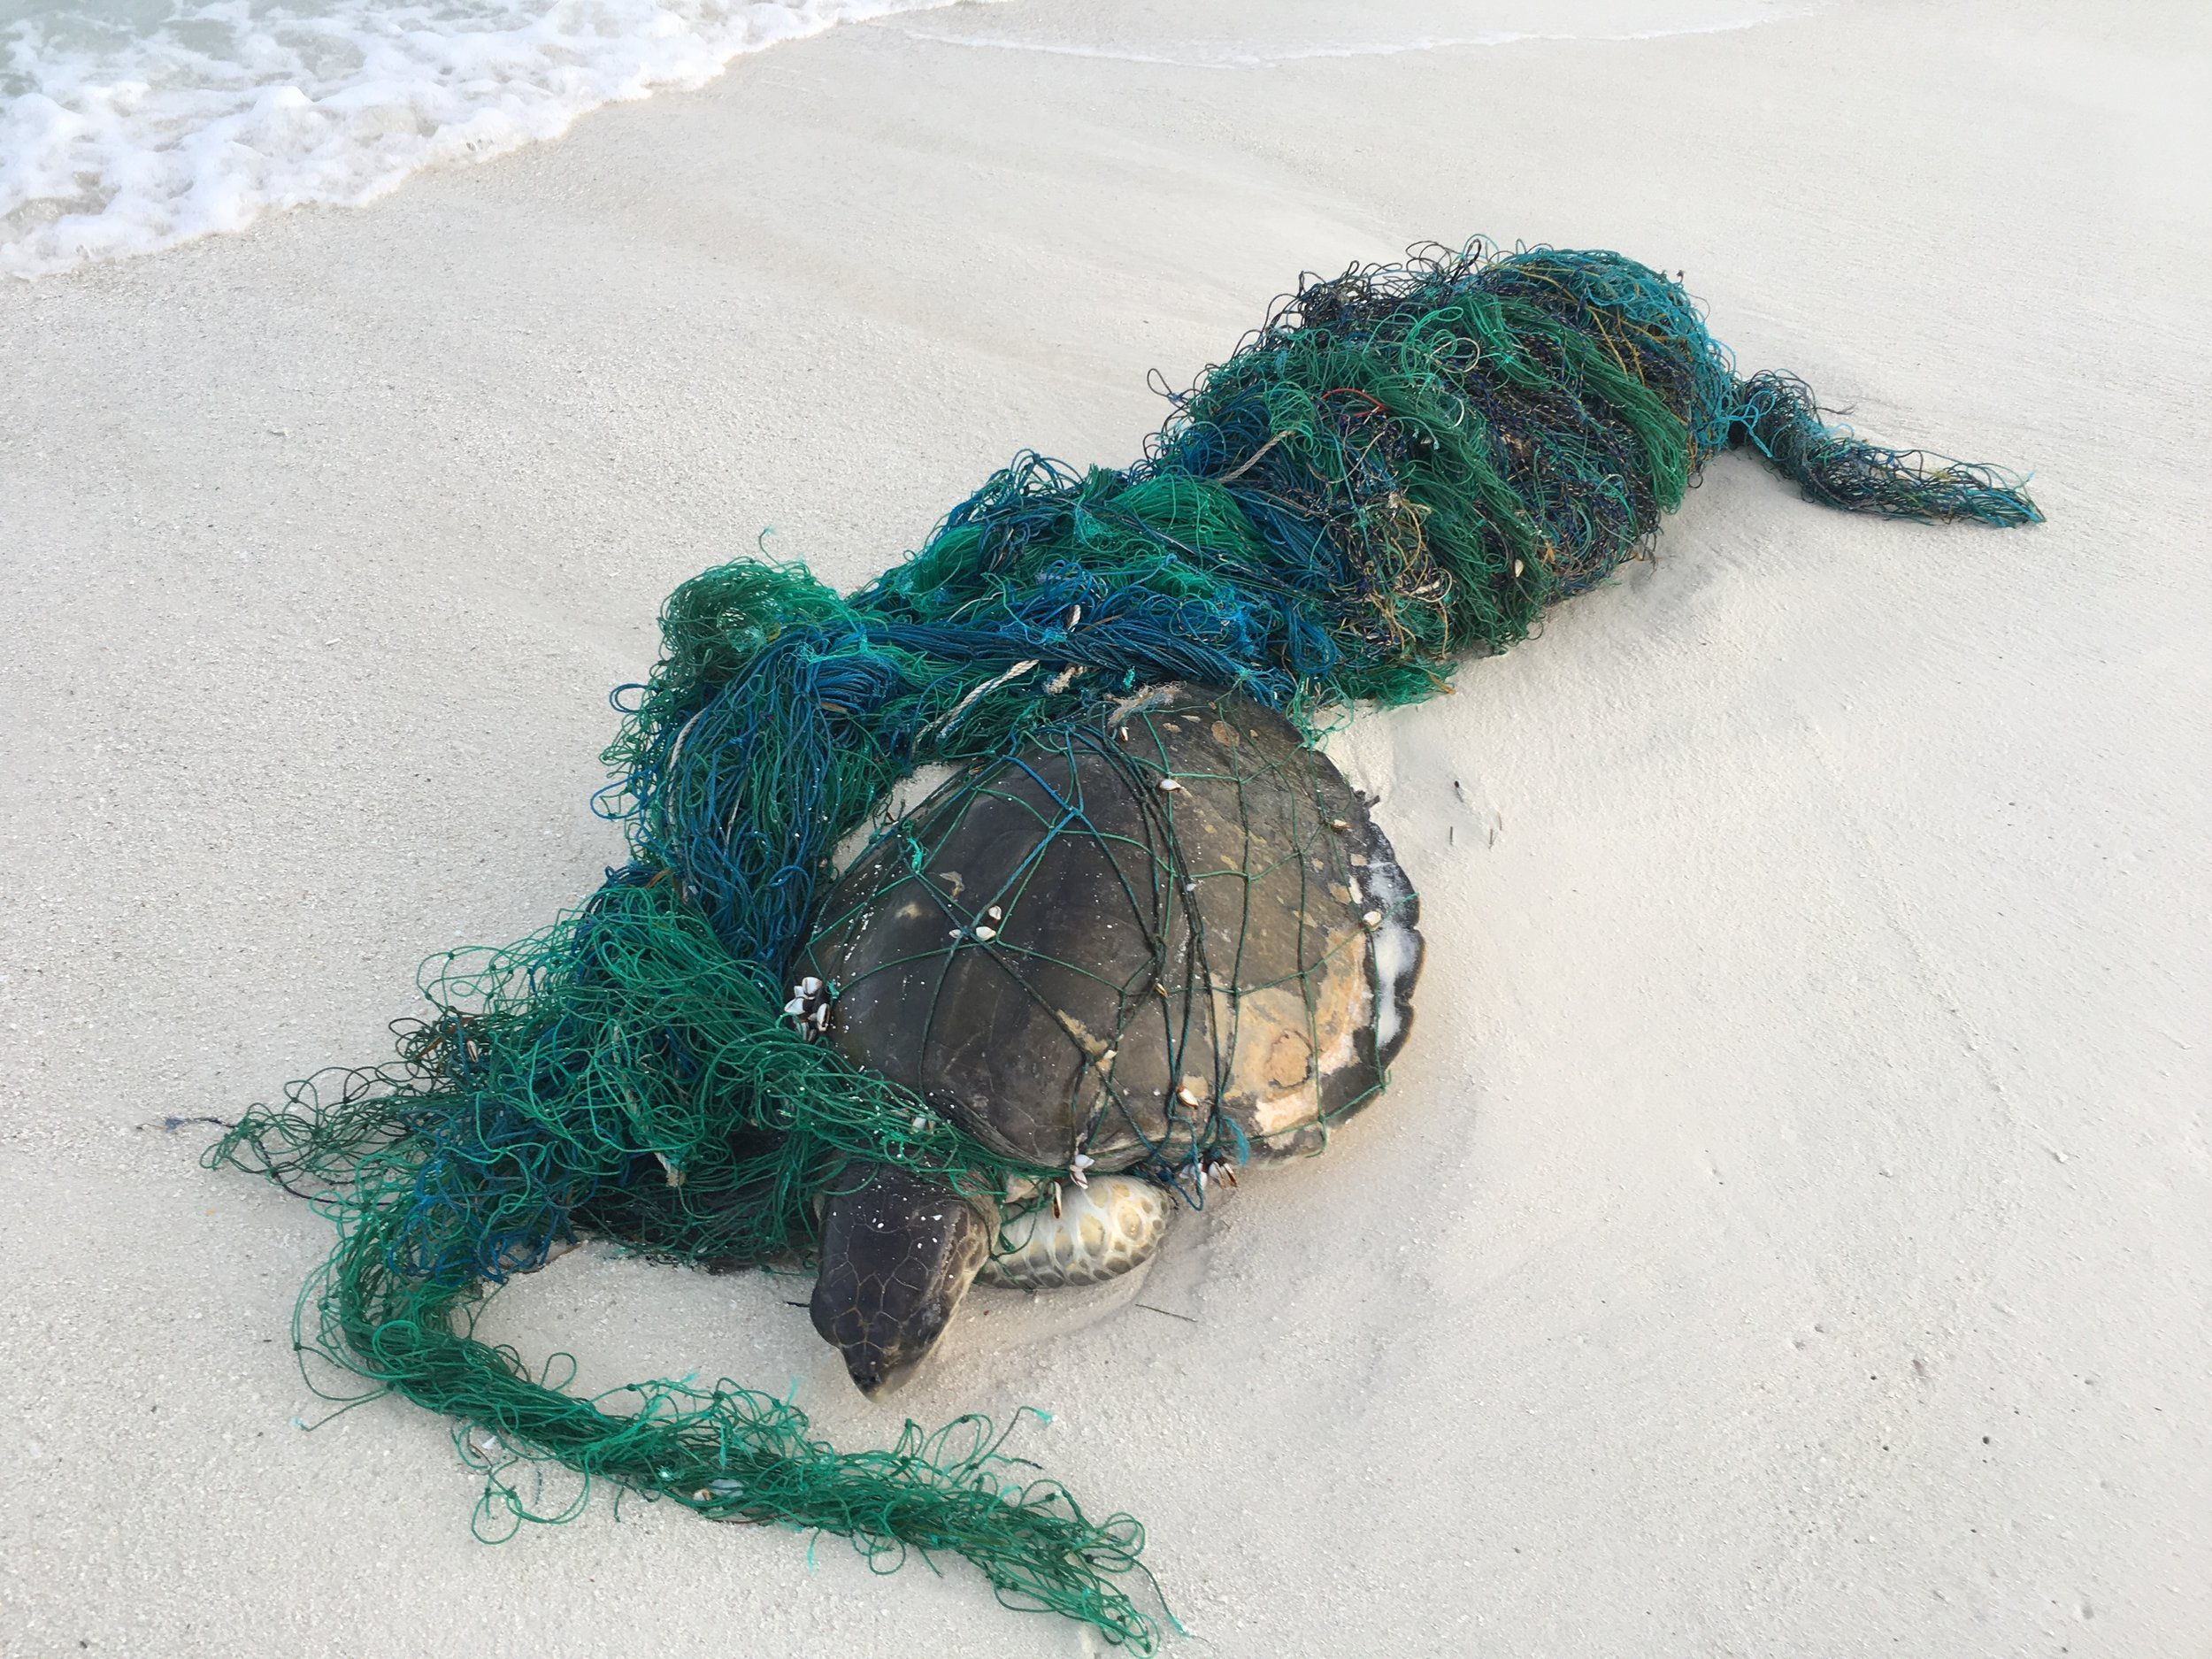 Olive Ridley turtle entangled in ghost fishing gear (fishing gear lost and discarded at sea)